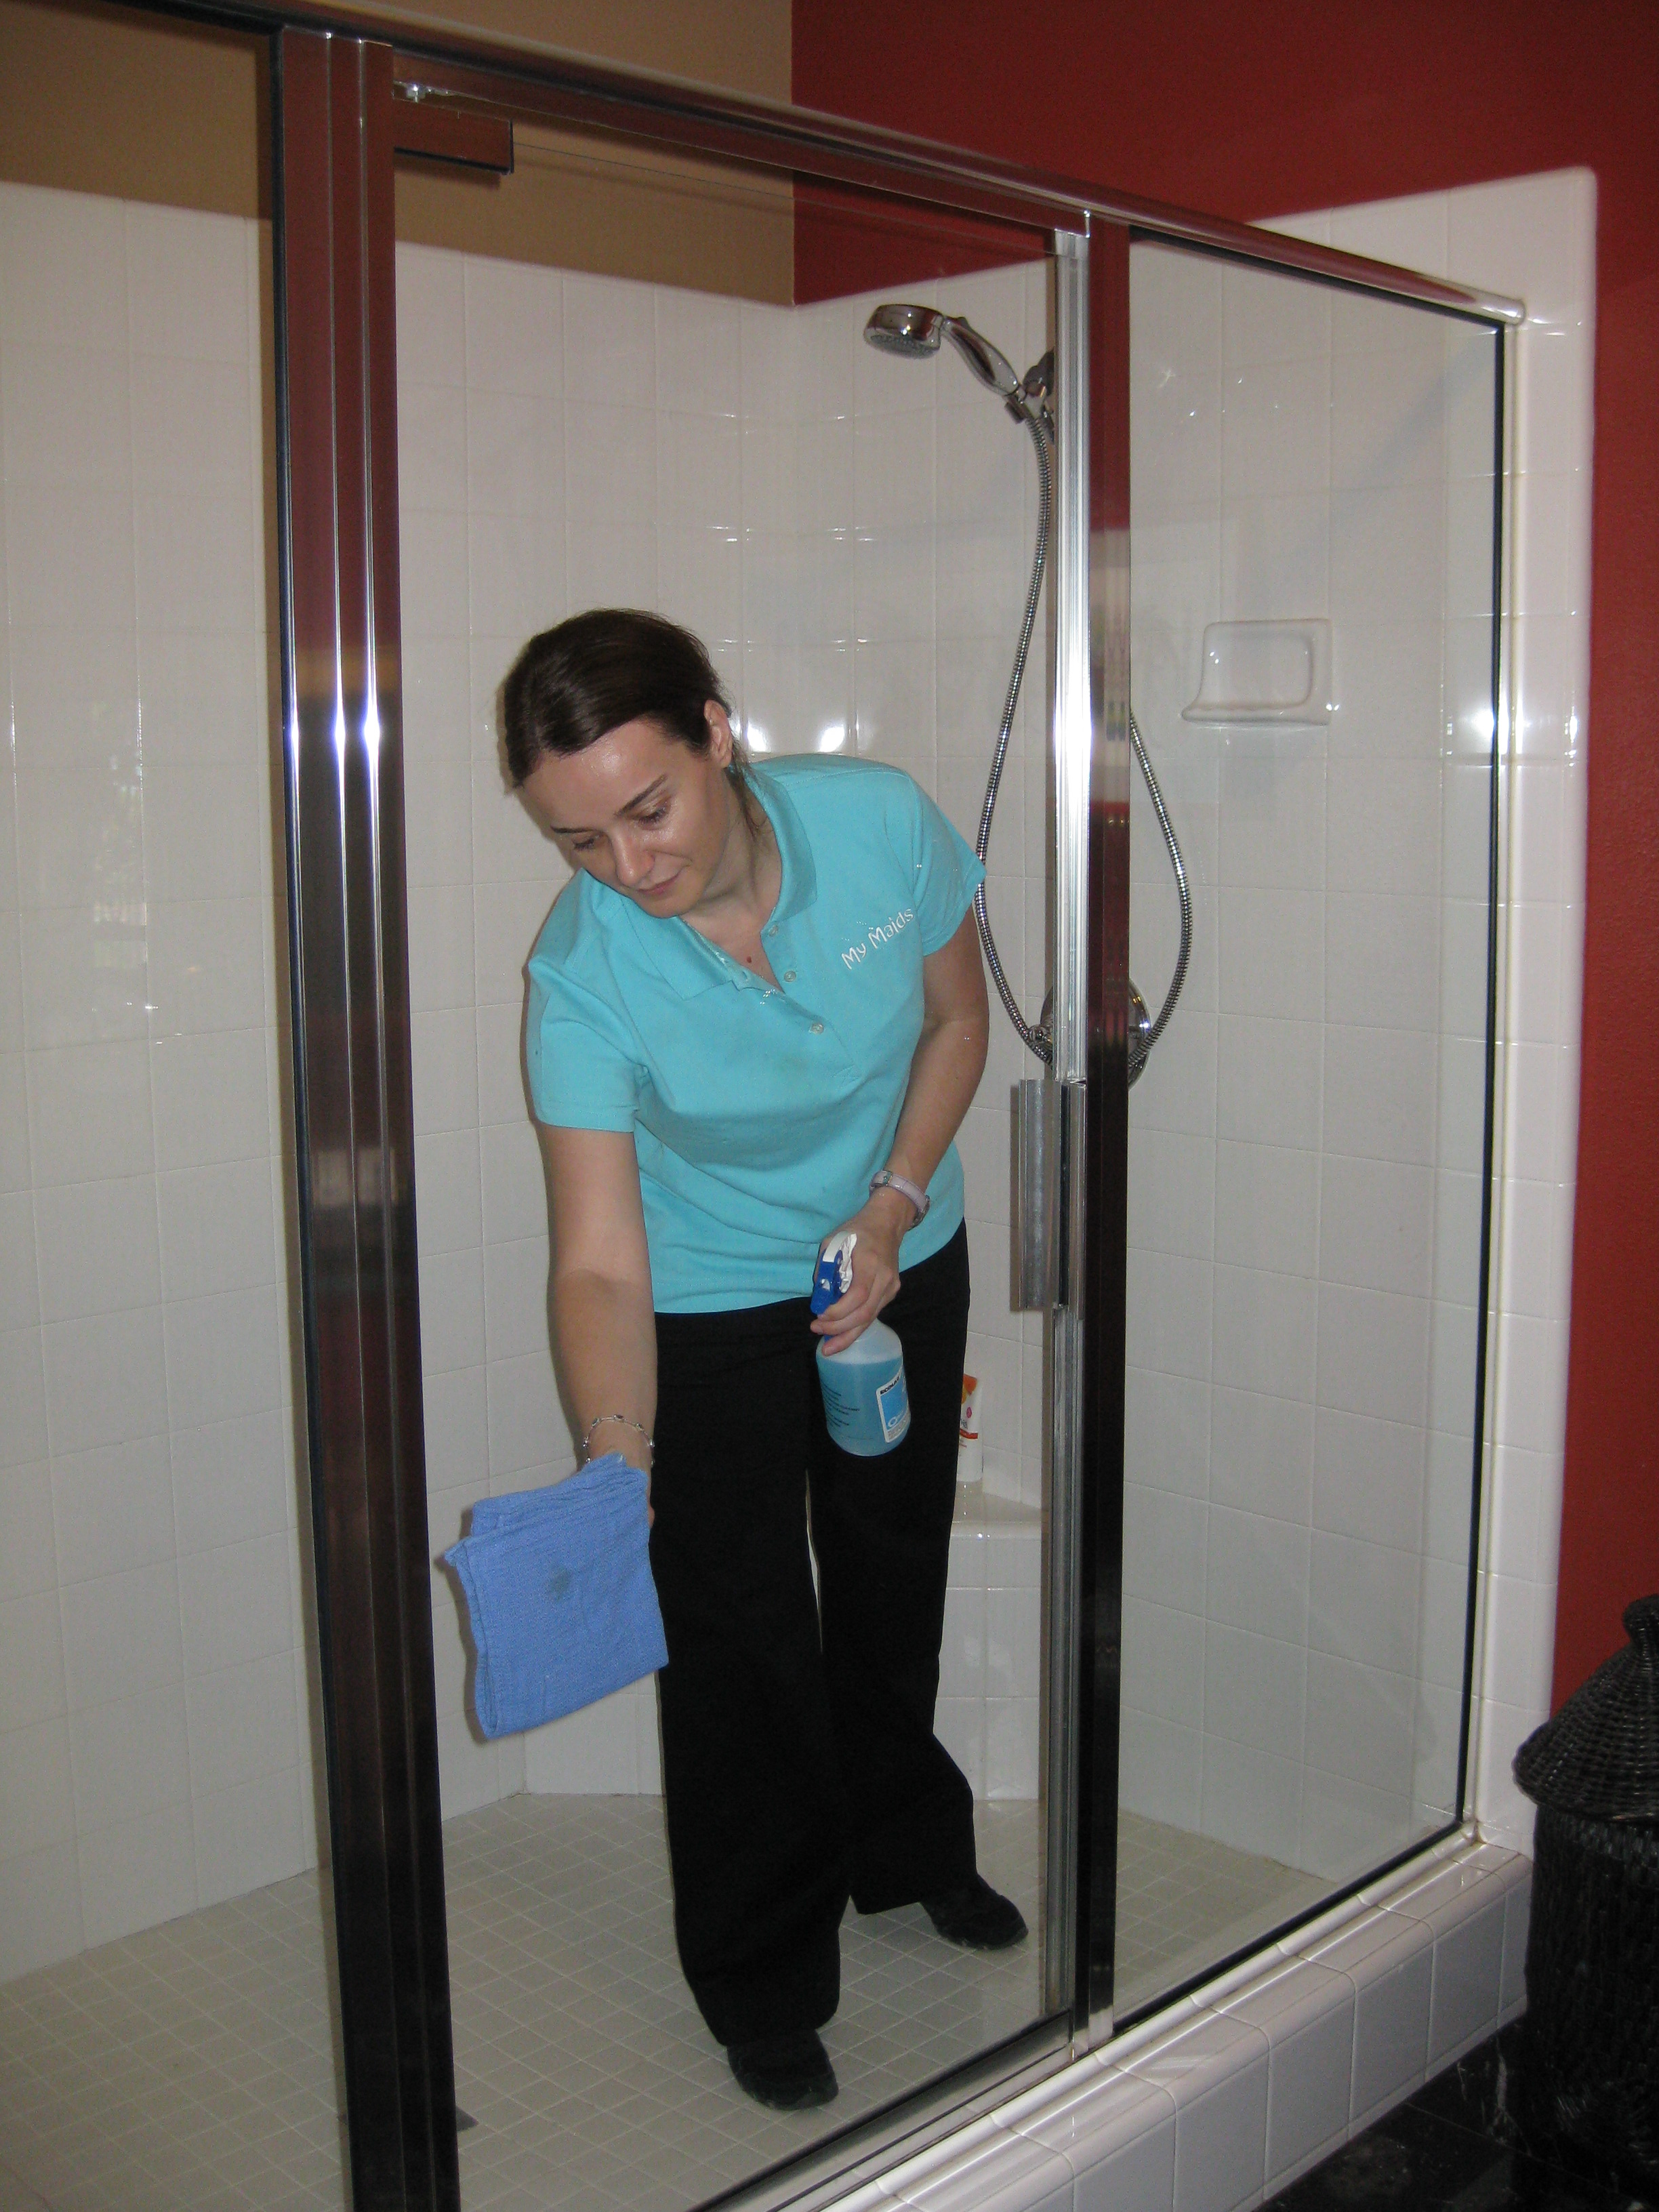 My Maids House Cleaning Service image 5